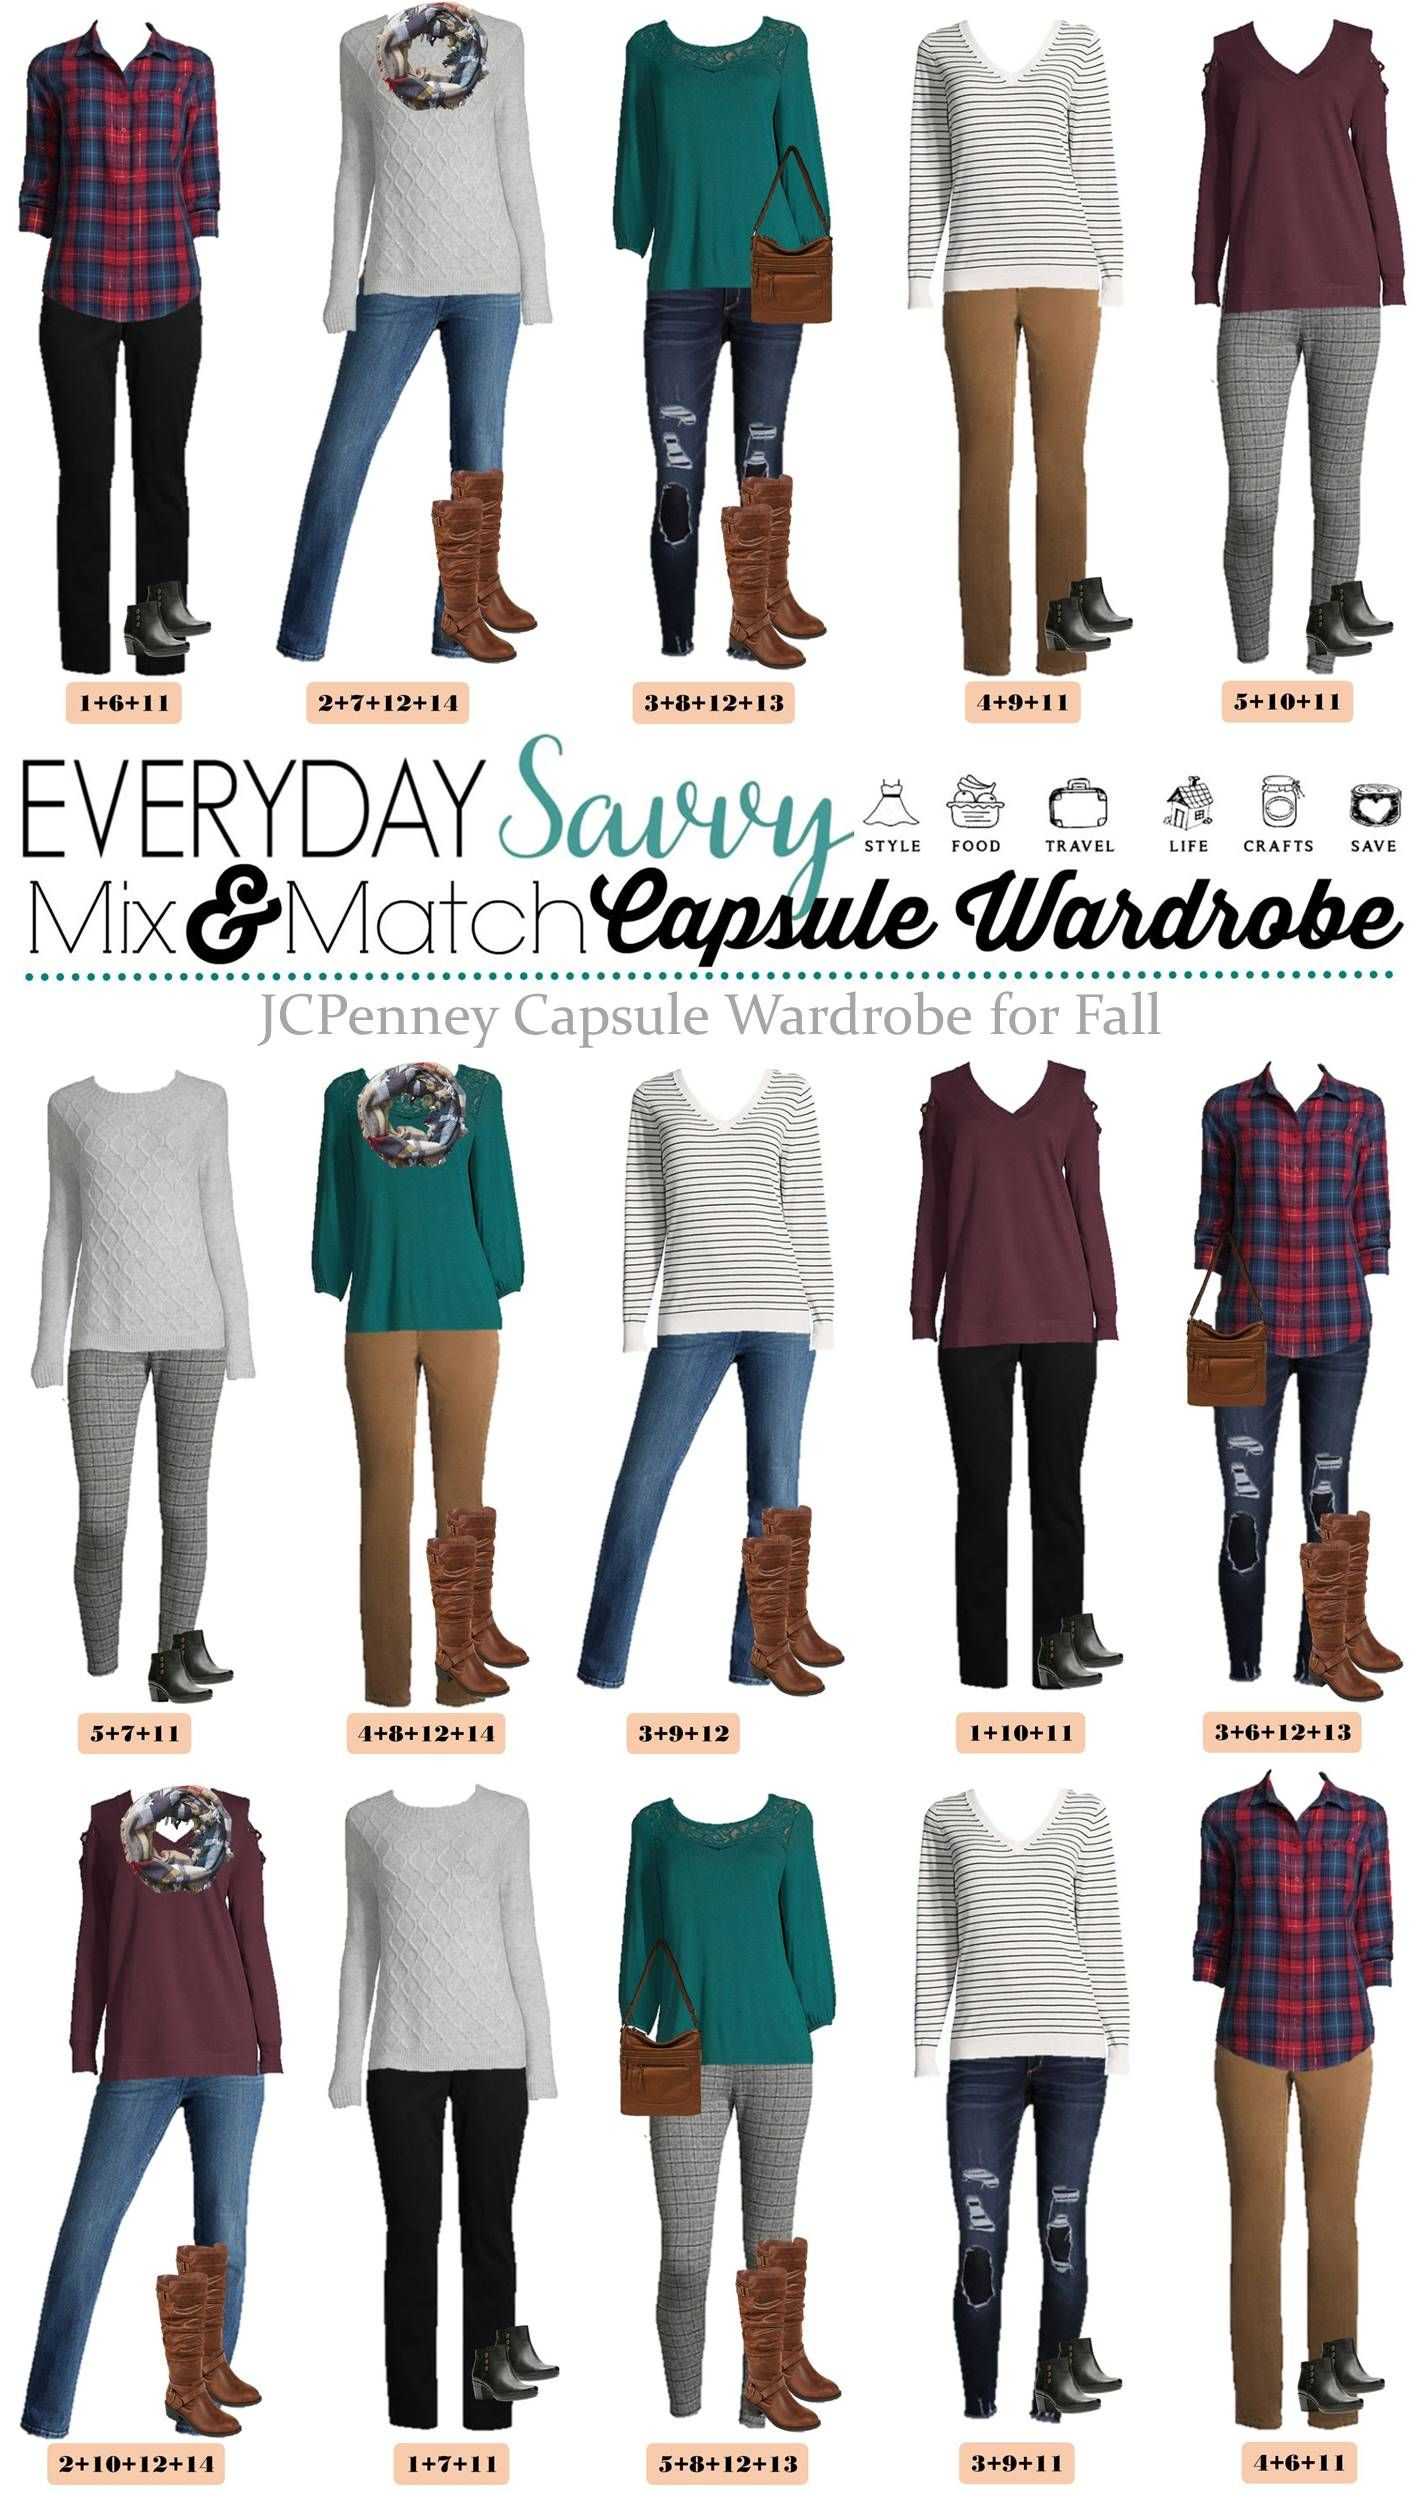 97e57c844eb Fall Casual Outfits - JCPenney Capsule Wardrobe